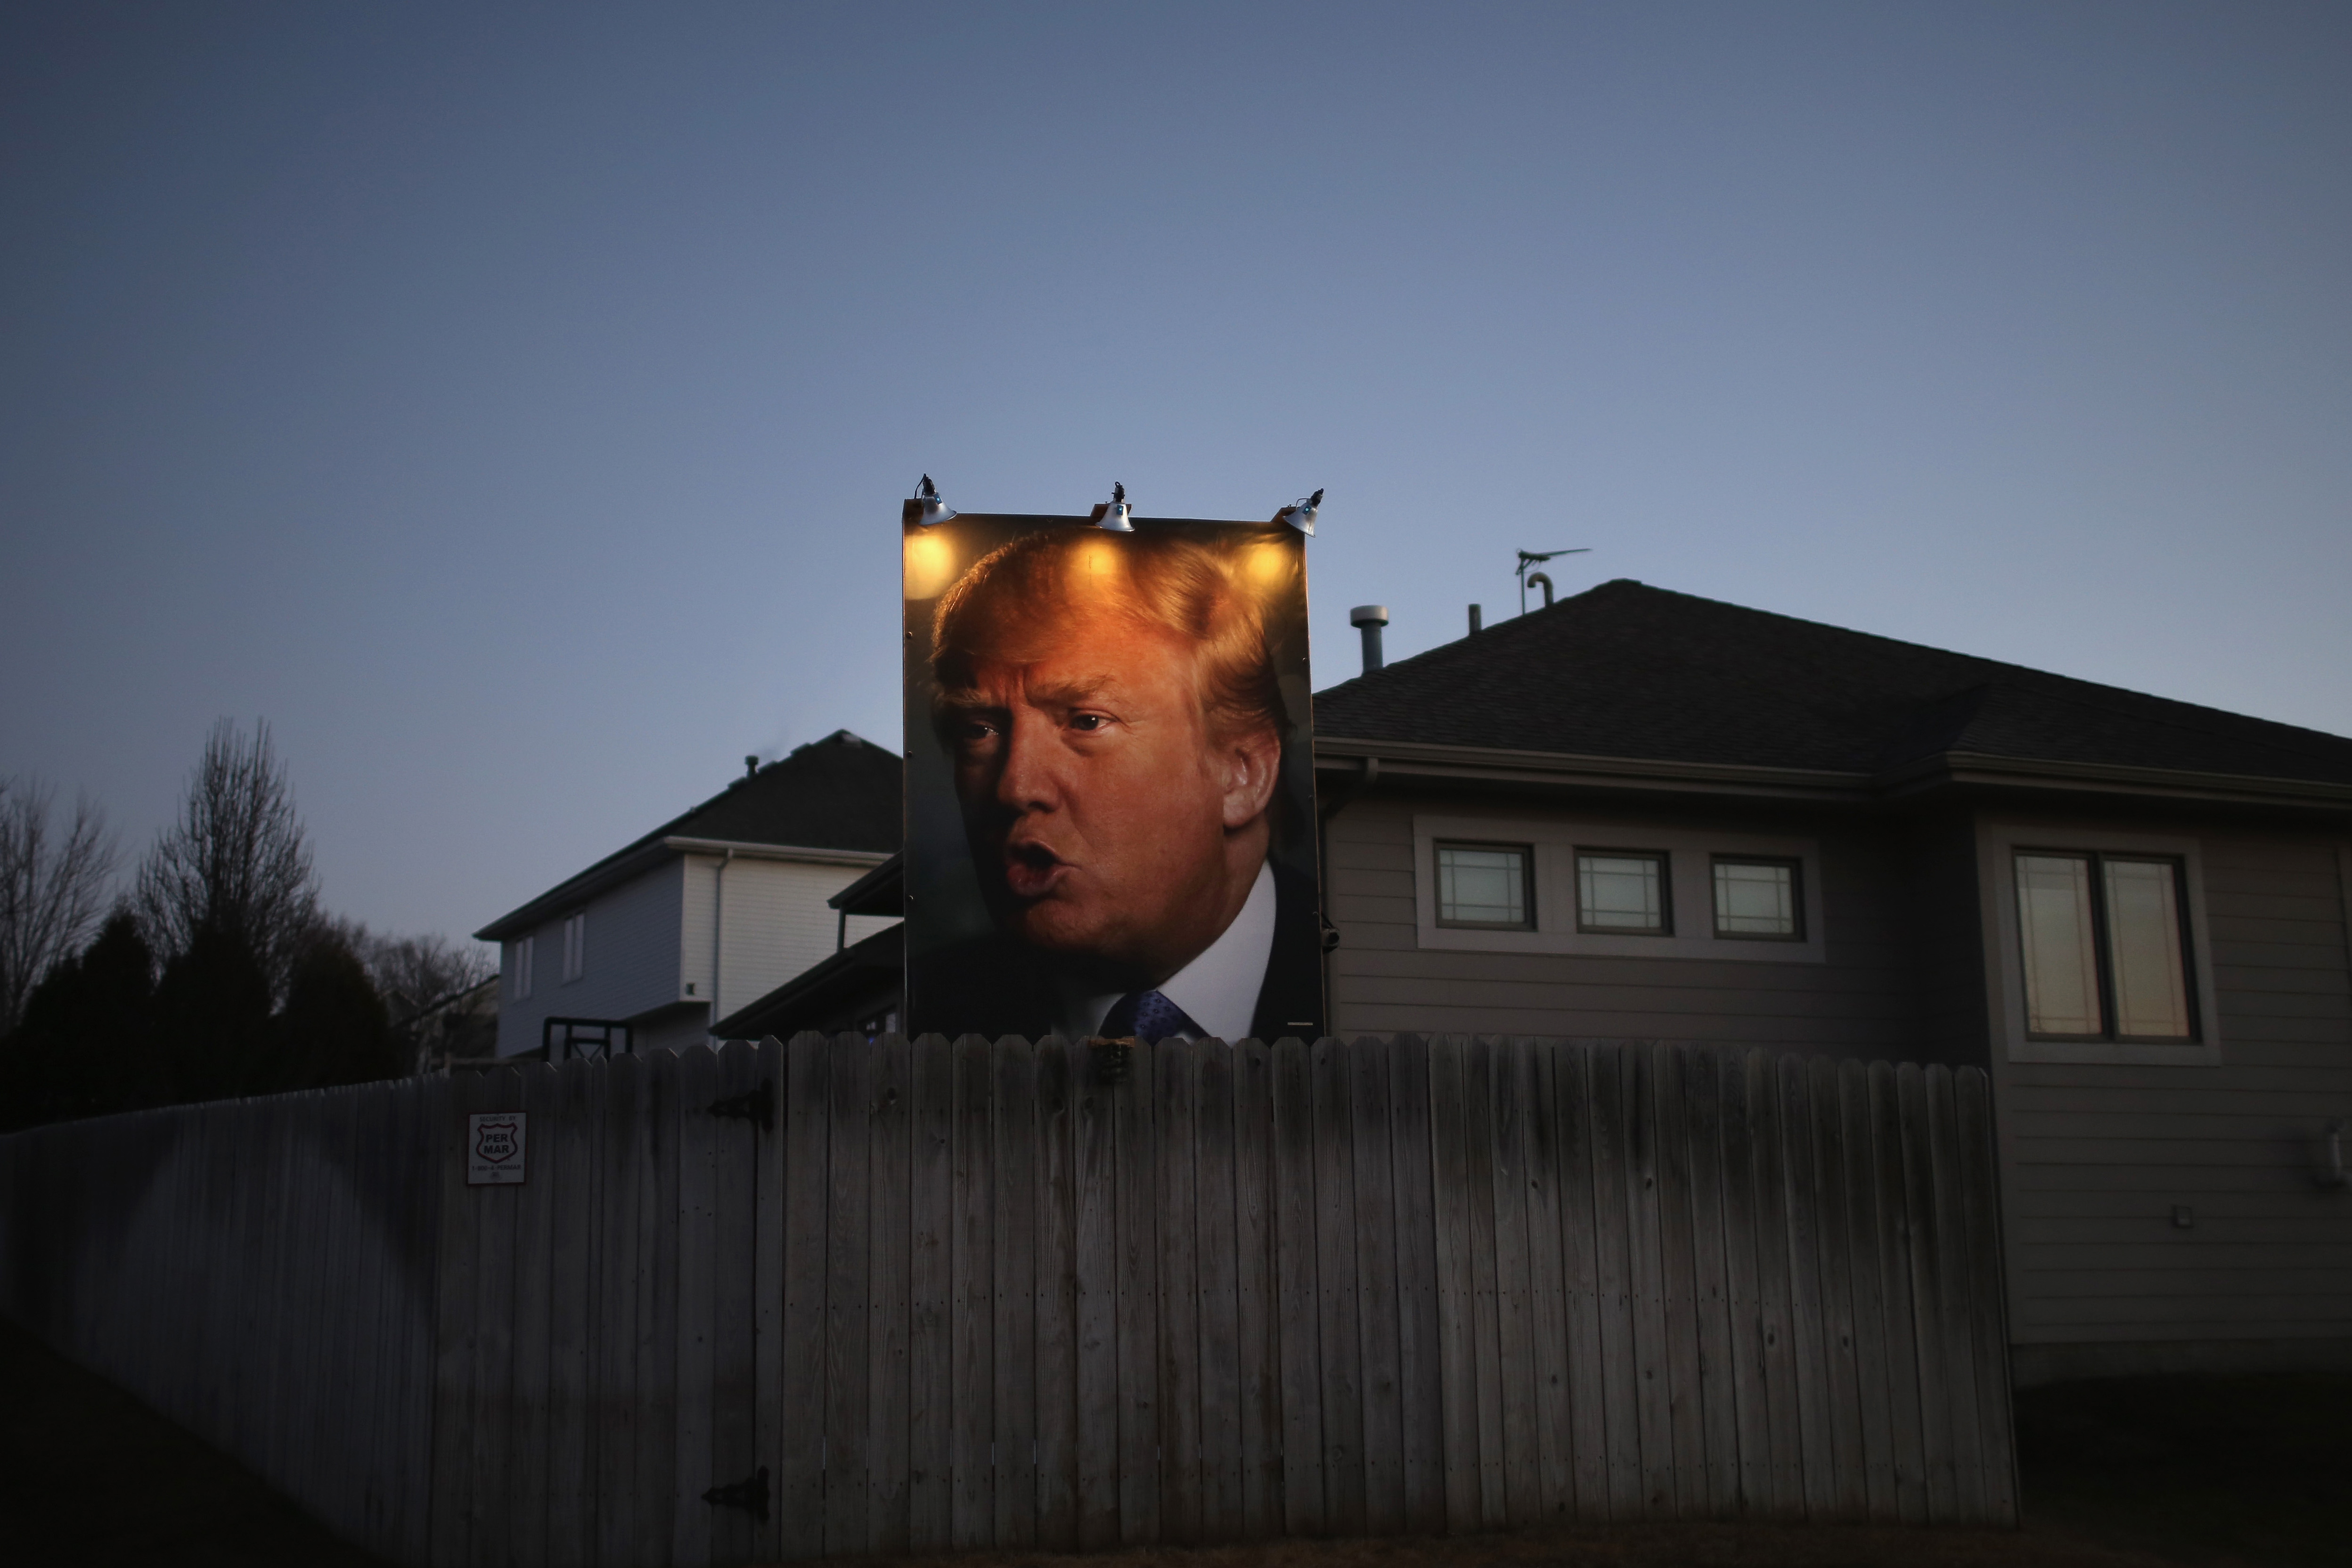 A giant poster of Republican presidential candidate Donald Trump is displayed by a supporter on Jan. 28, 2016 in Des Moines, Iowa.